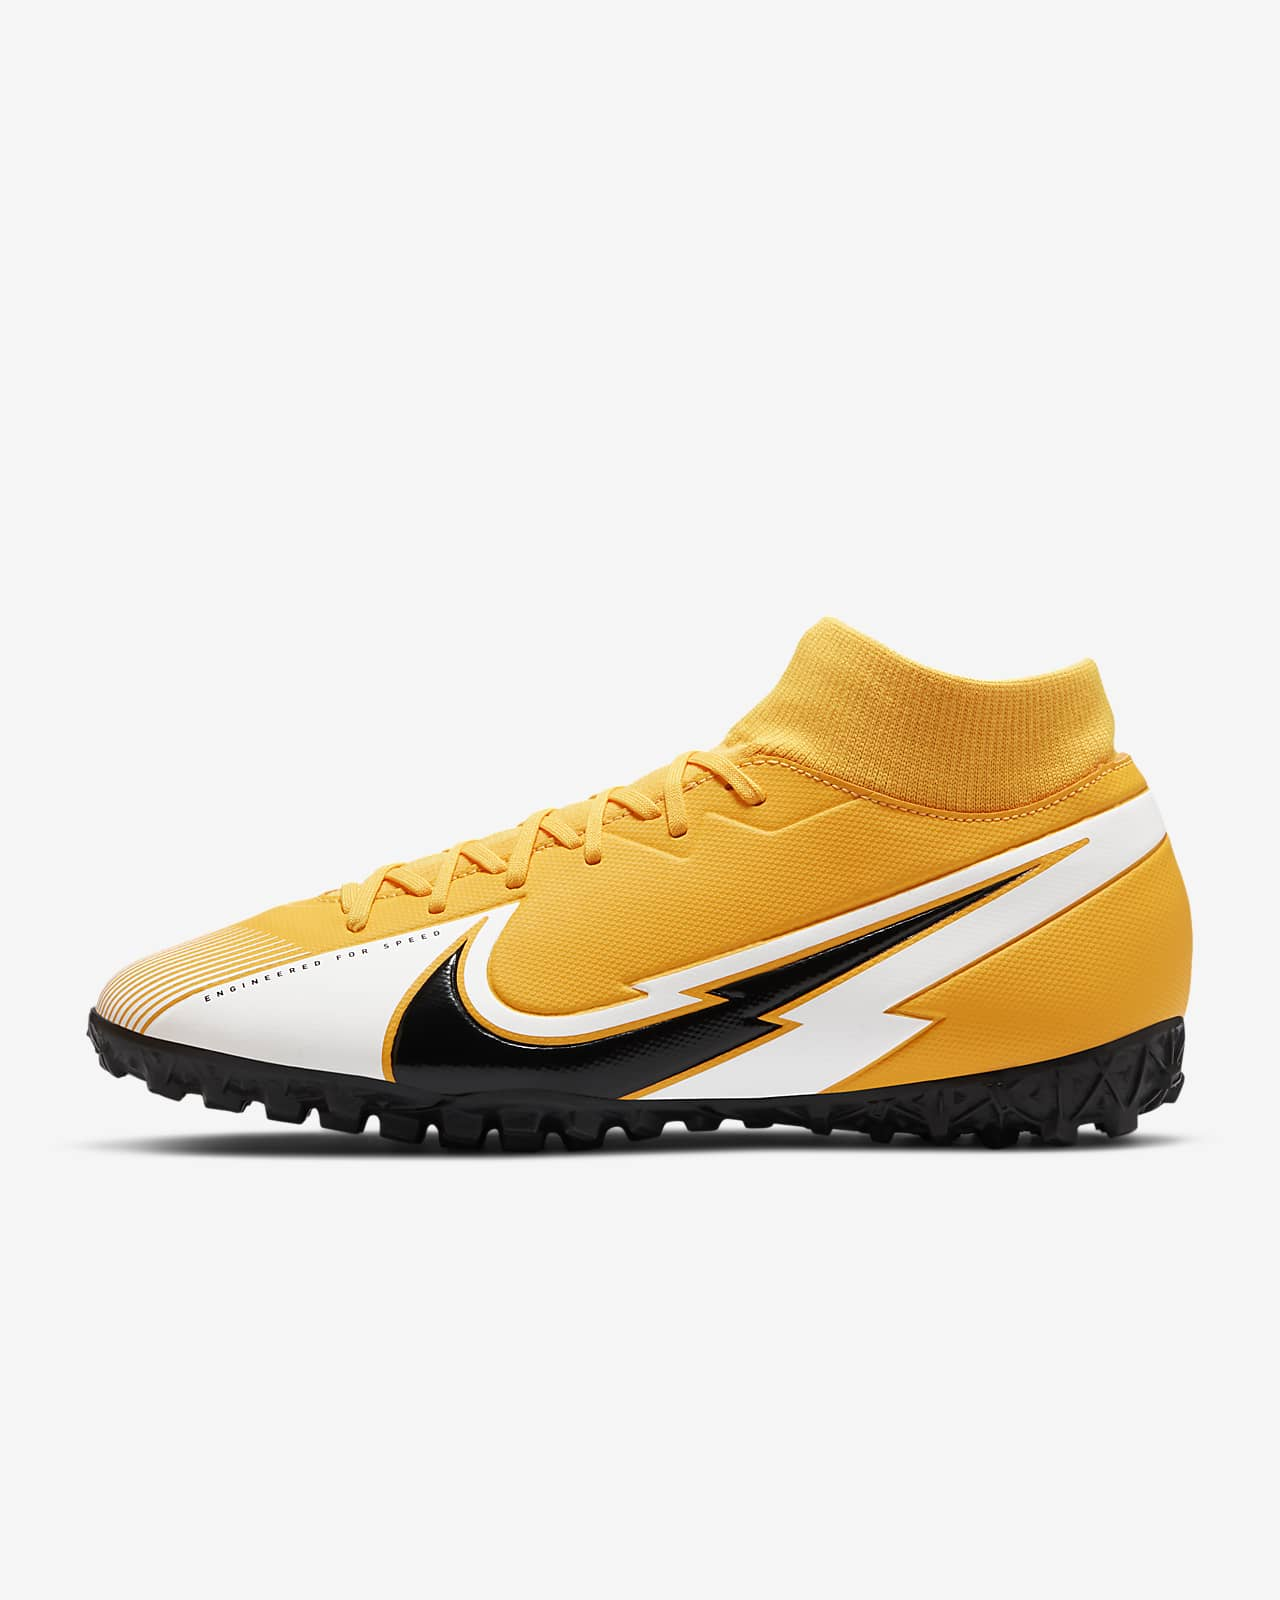 Nike Mercurial Superfly 7 Academy TF 人工草地足球鞋